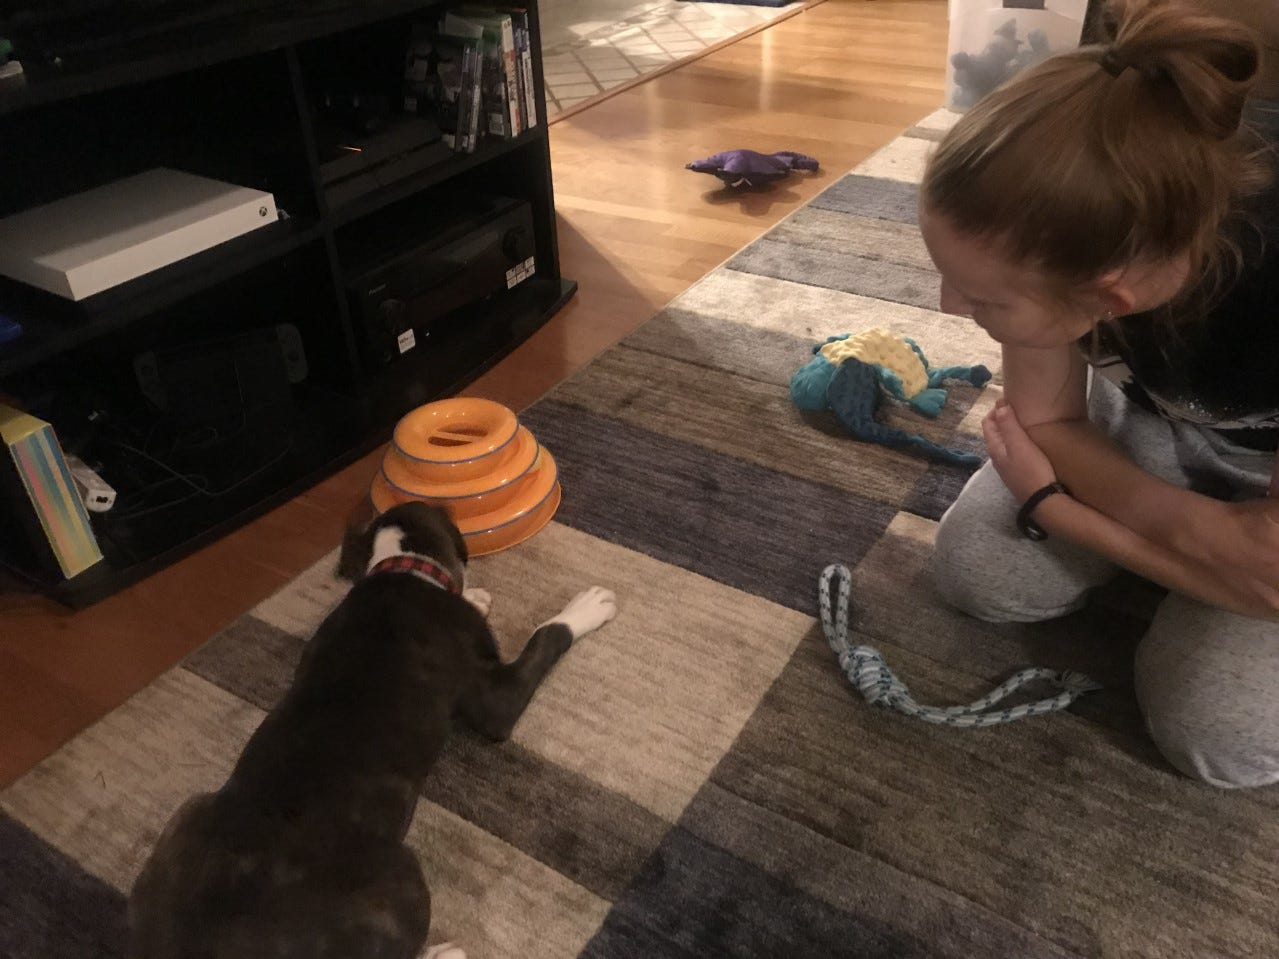 Chelsea Russell watches her new dog Spock play with a toy Wednesday, March 13, 2019.